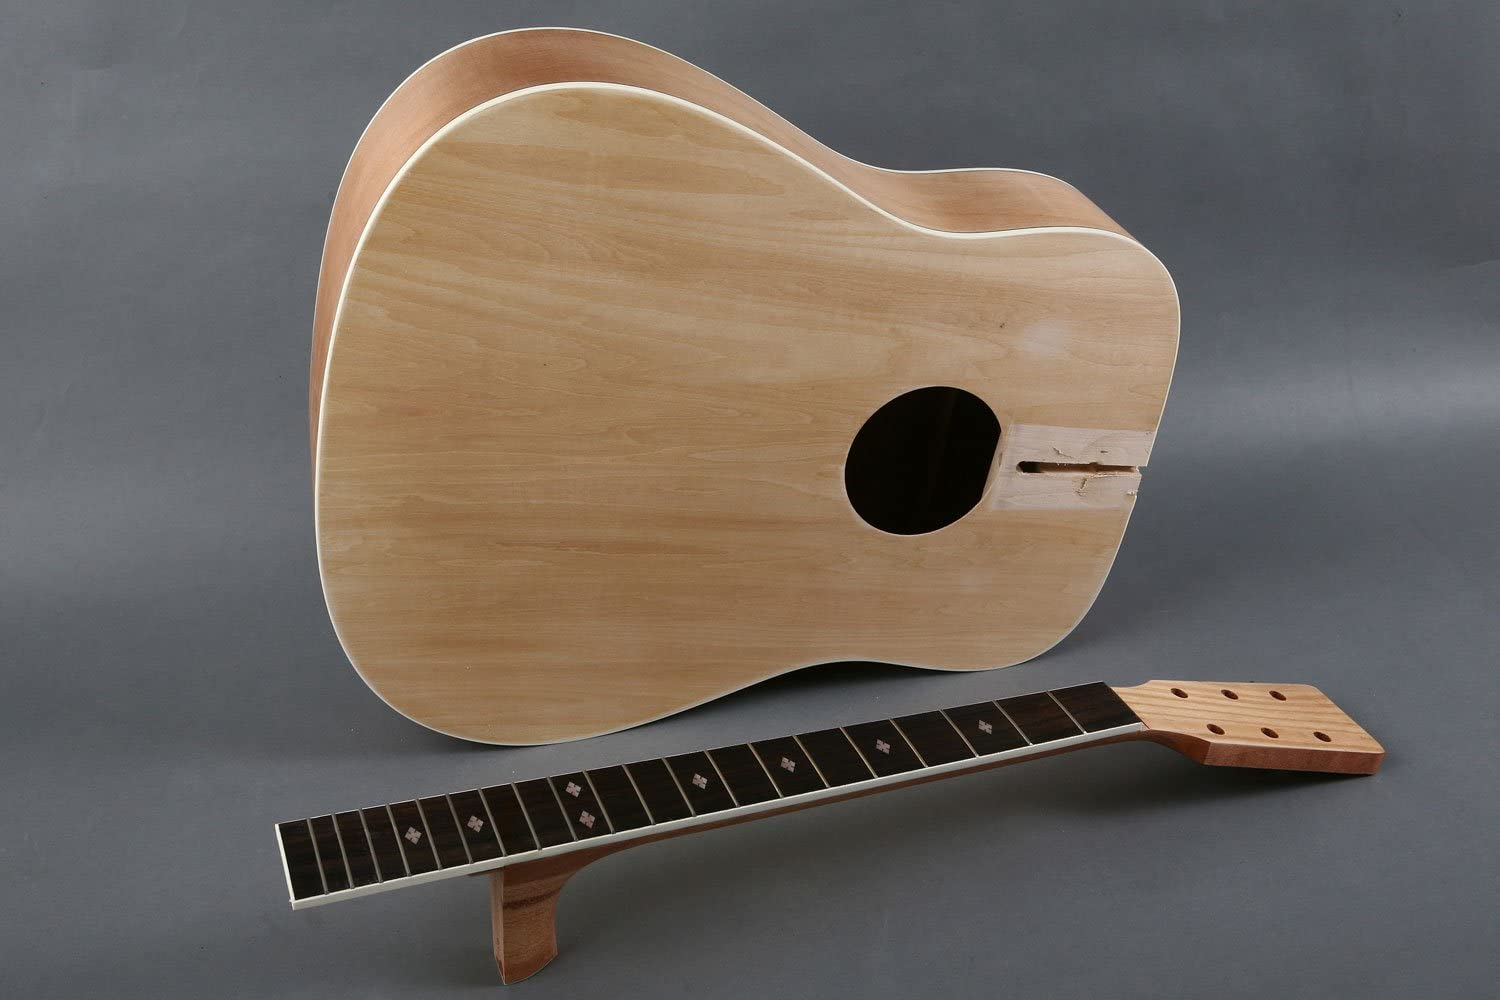 Diy Builder Acoustic Guitar Kit Customize And Make Your Own Amazon Co Uk Musical Instruments